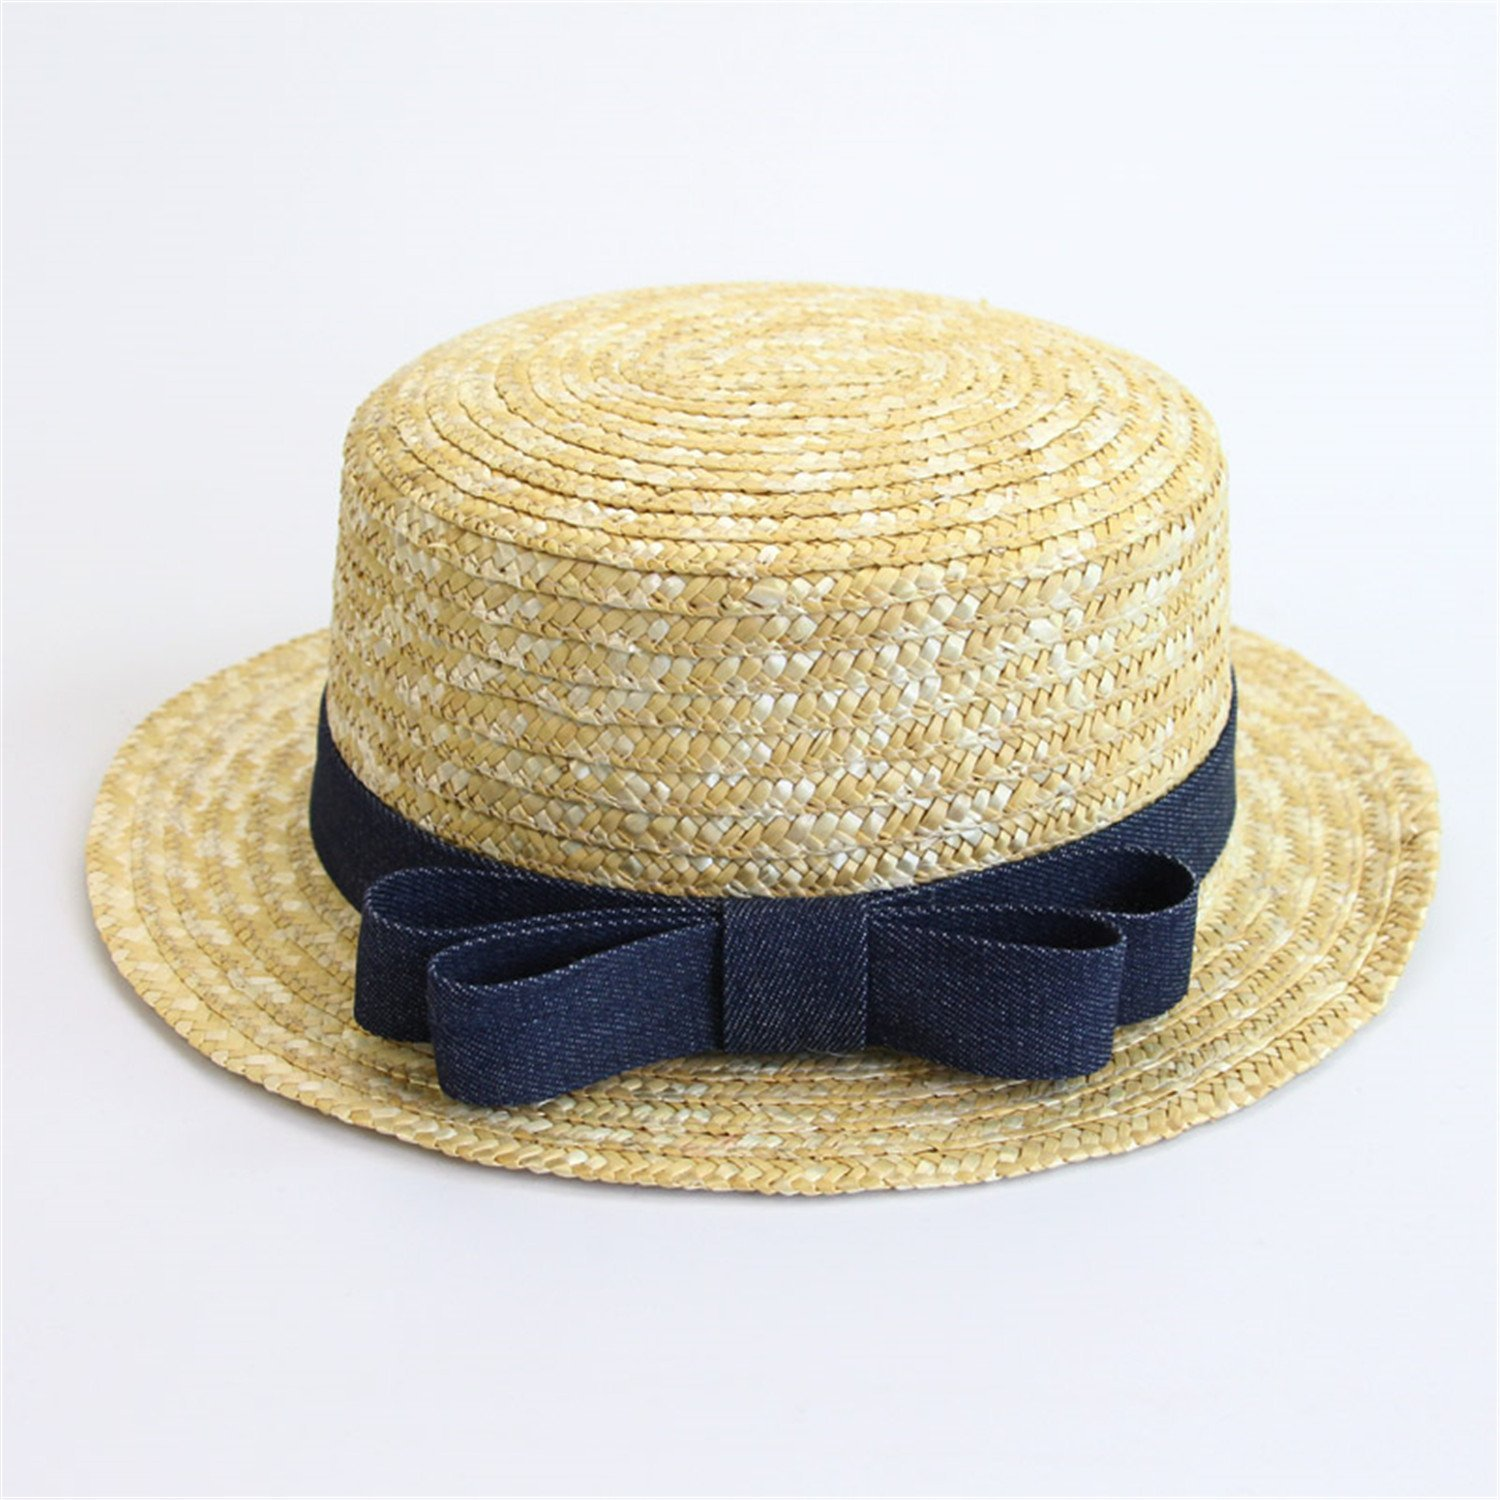 4b13c738307 Get Quotations · Fashion Lady Boater Sun Caps Ribbon Round Flat Top Straw  Beach Hat Panama Hat Summer Hats